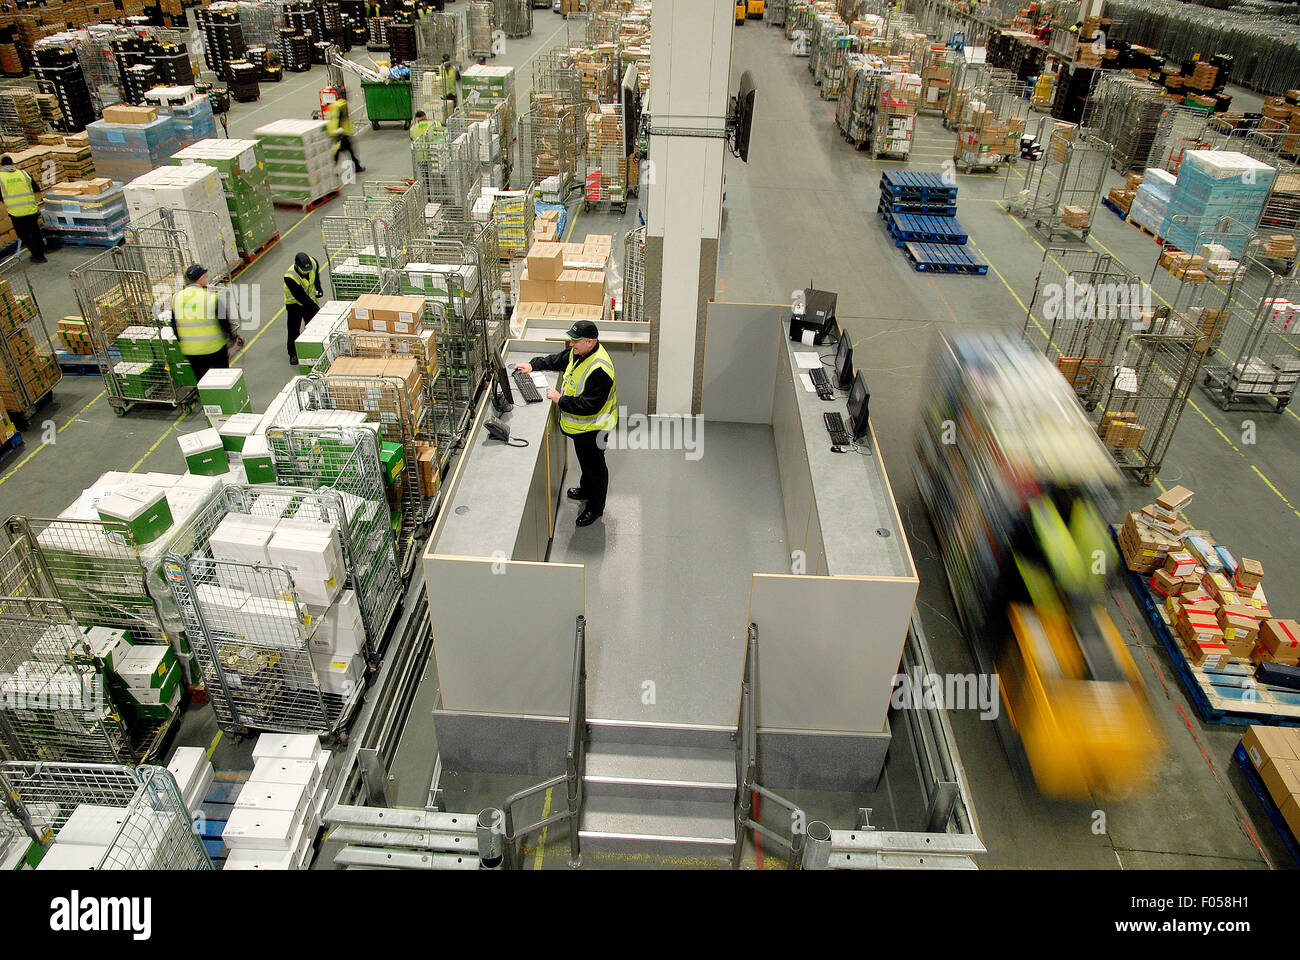 aerial view of chill room at Asda depot - Stock Image